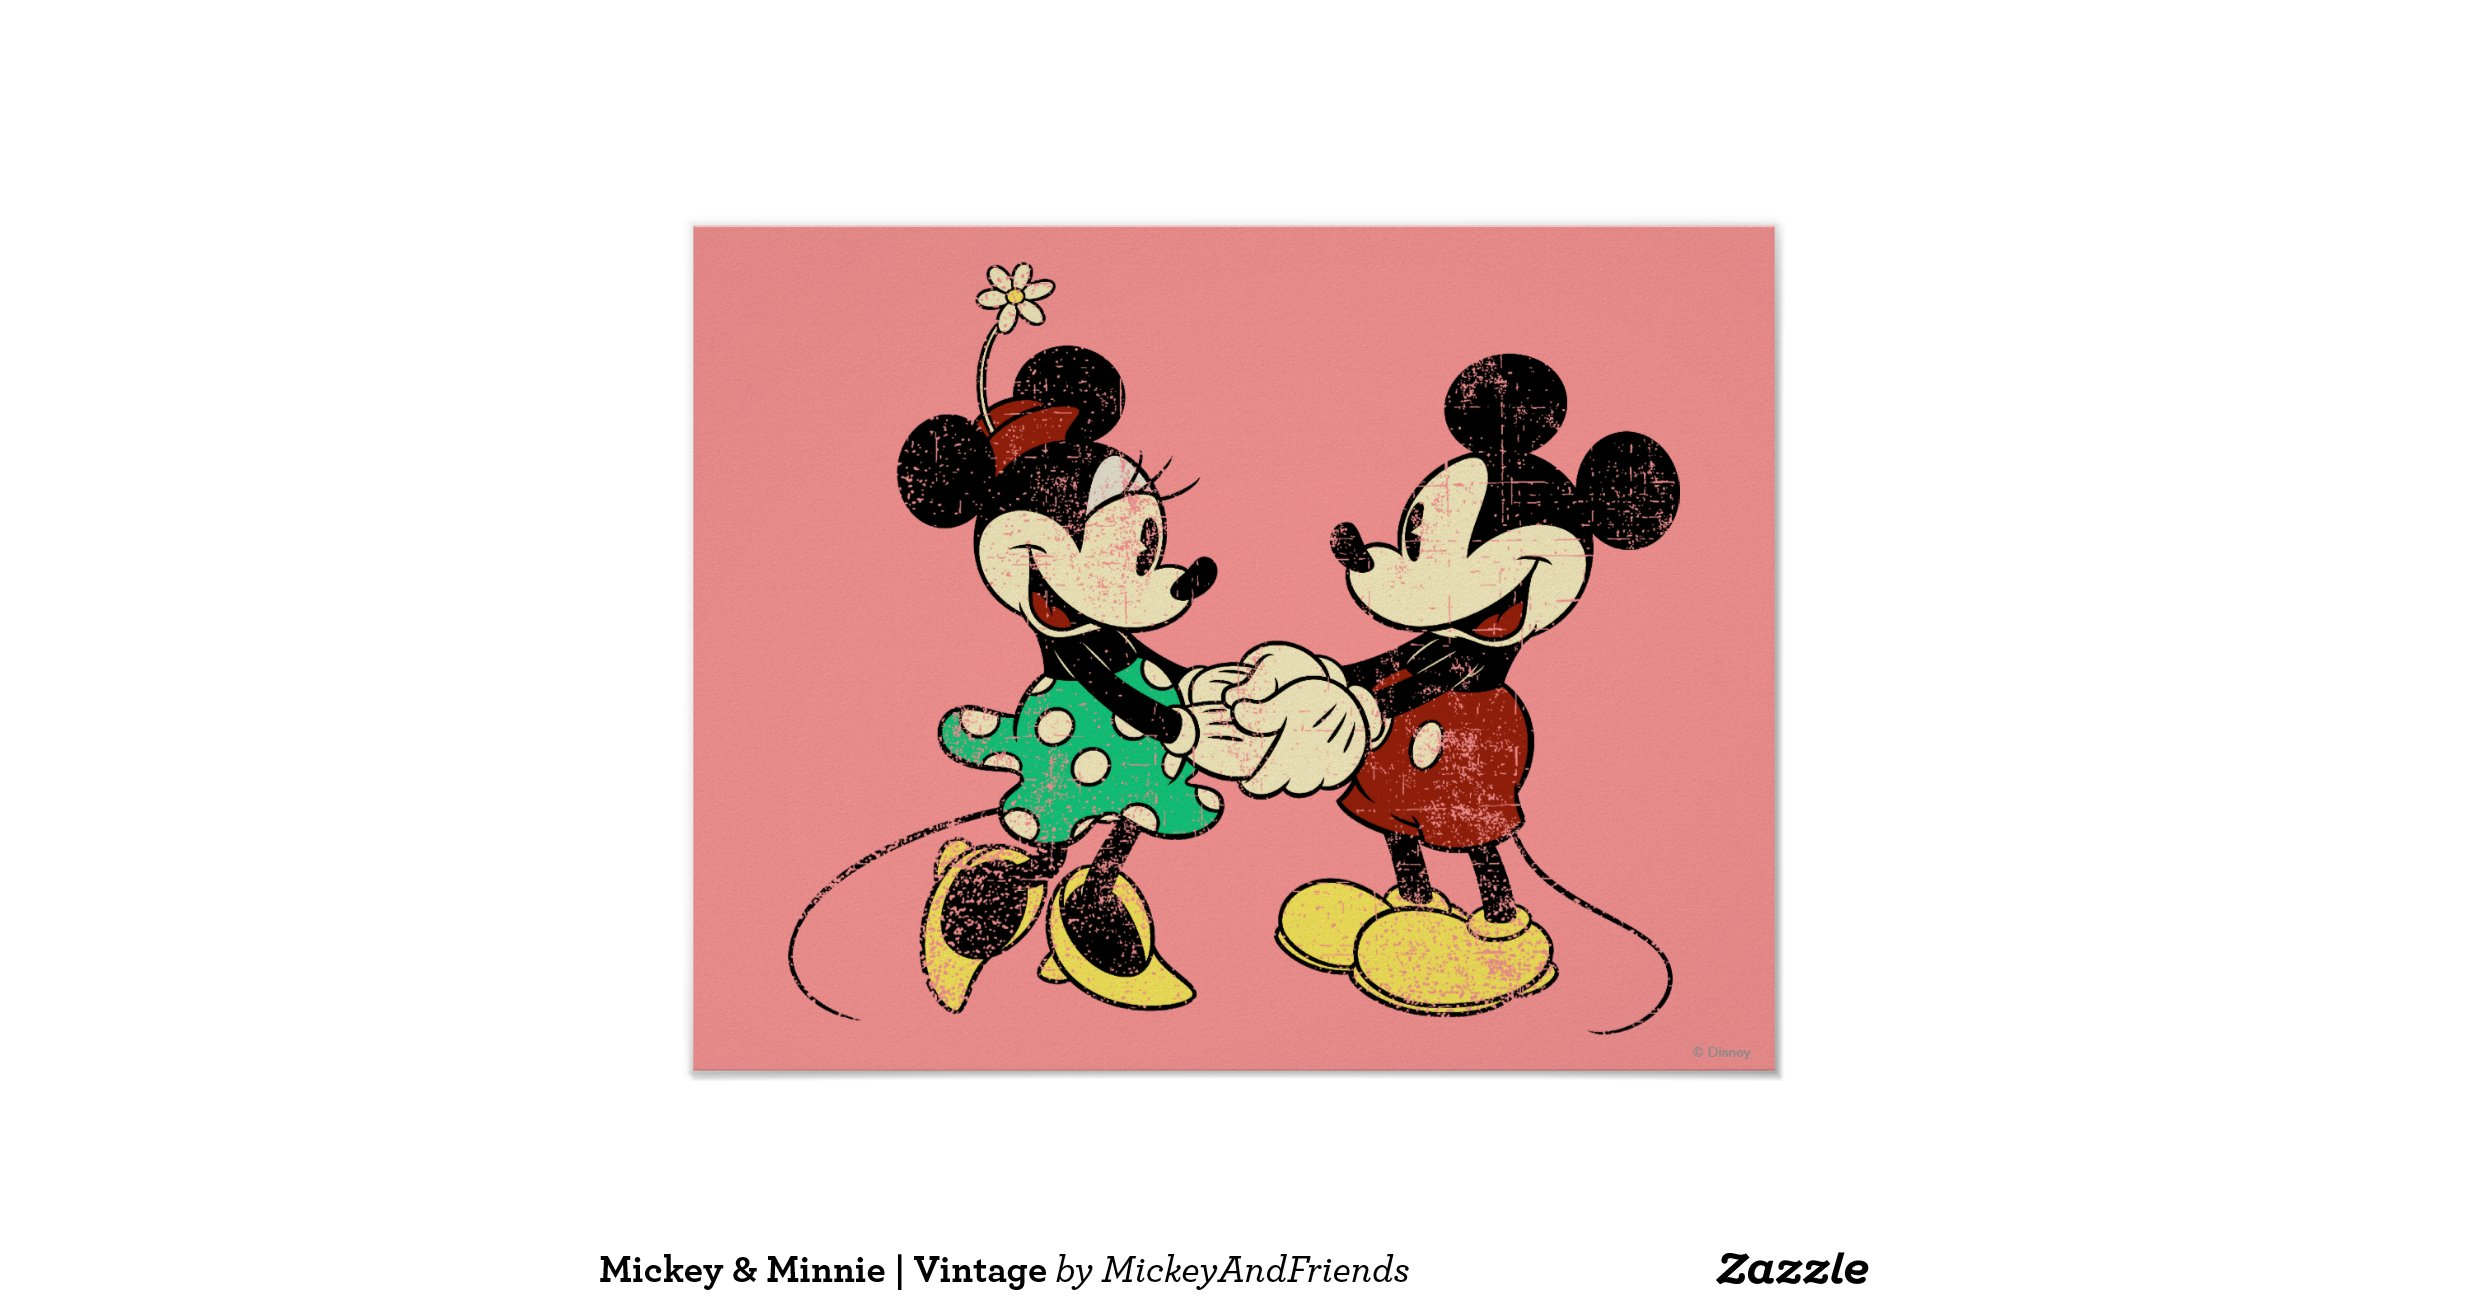 Vintage mickey mouse minnie posters zazzle - Mickey mouse minnie cienta ...